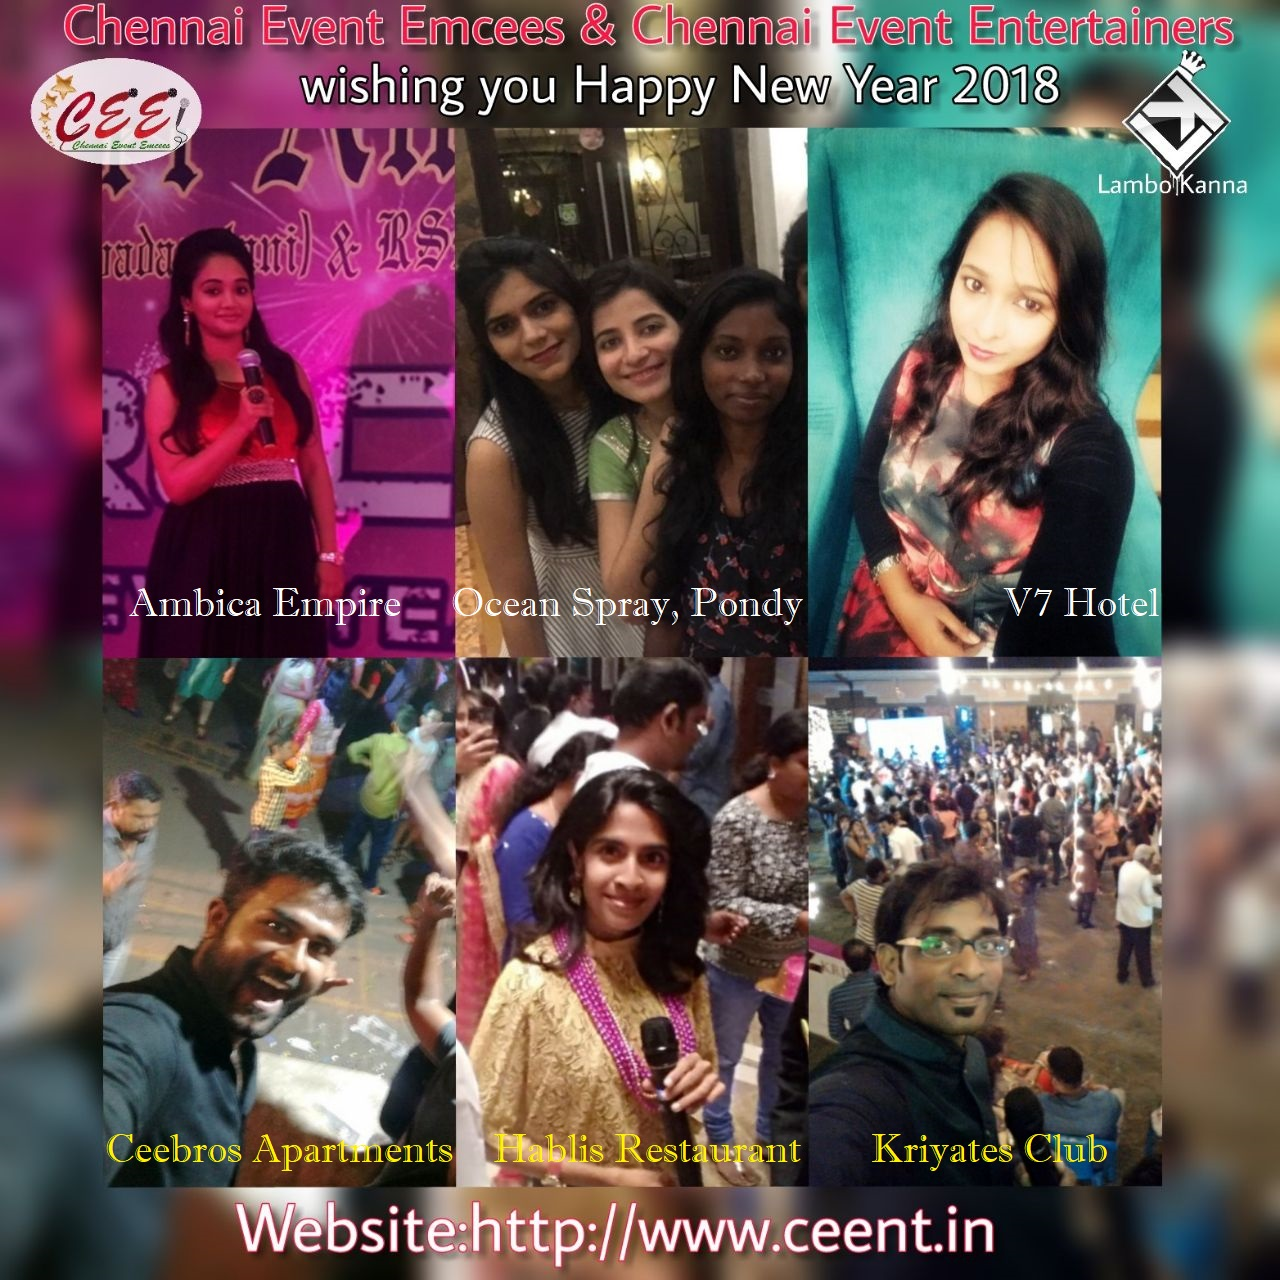 Chennai Event Entertainers and Emcees wishing you Happy New Year 2018